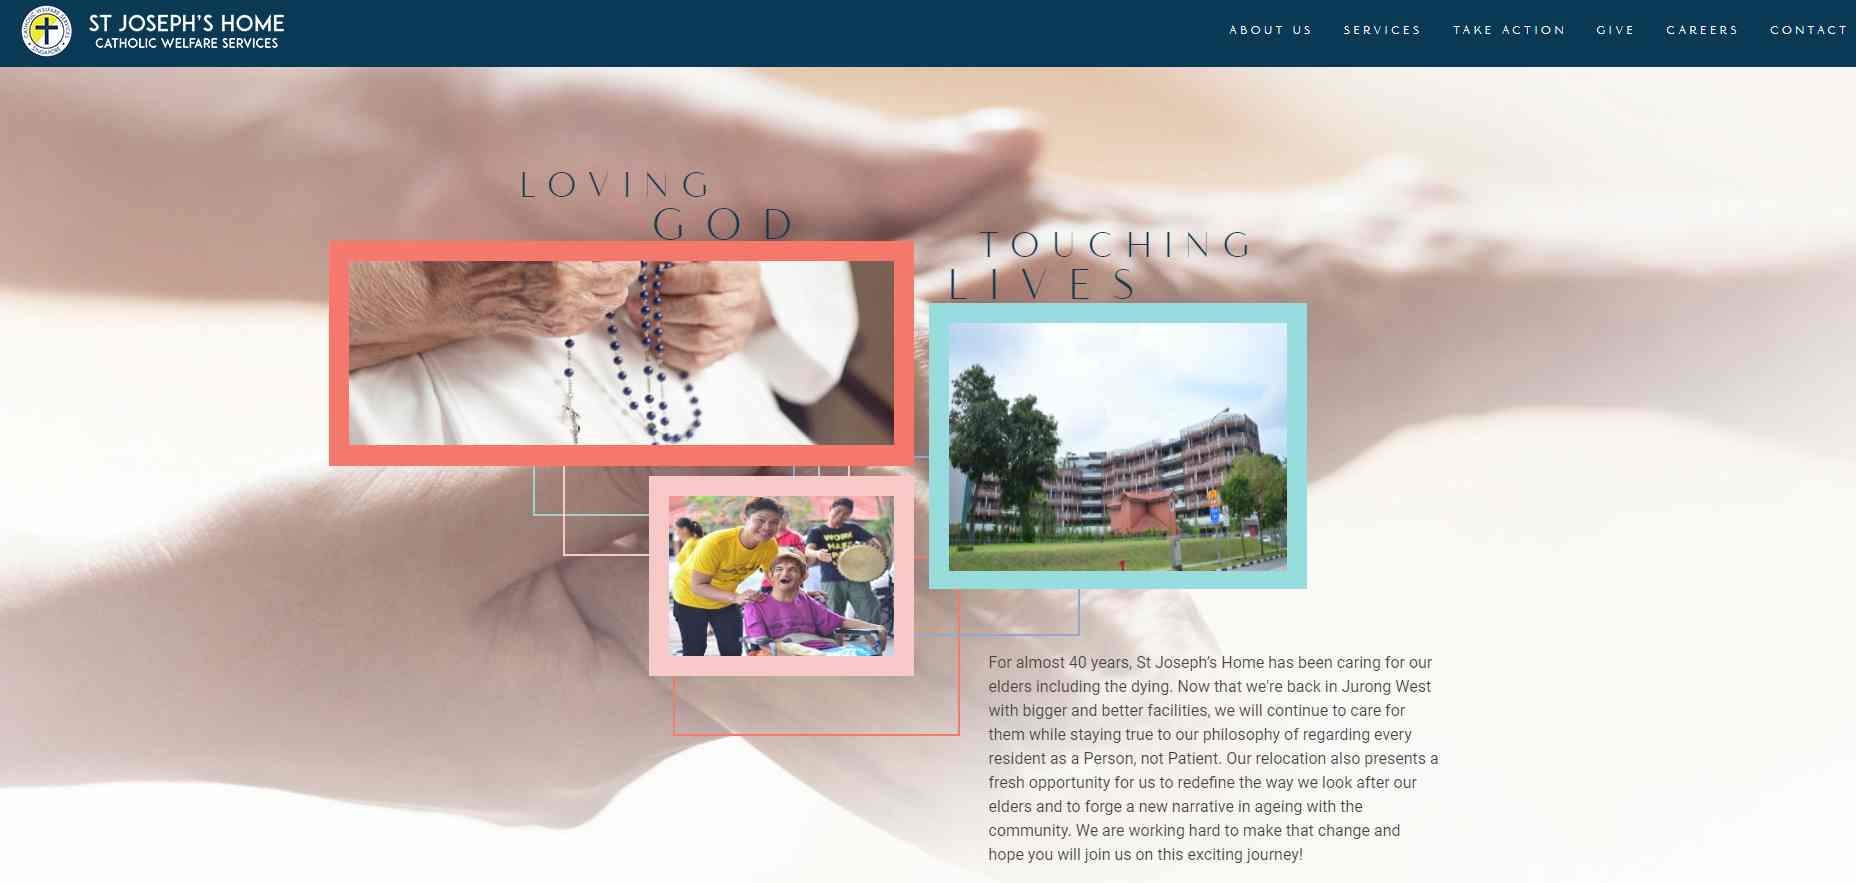 stjh Top Hospice Care Services